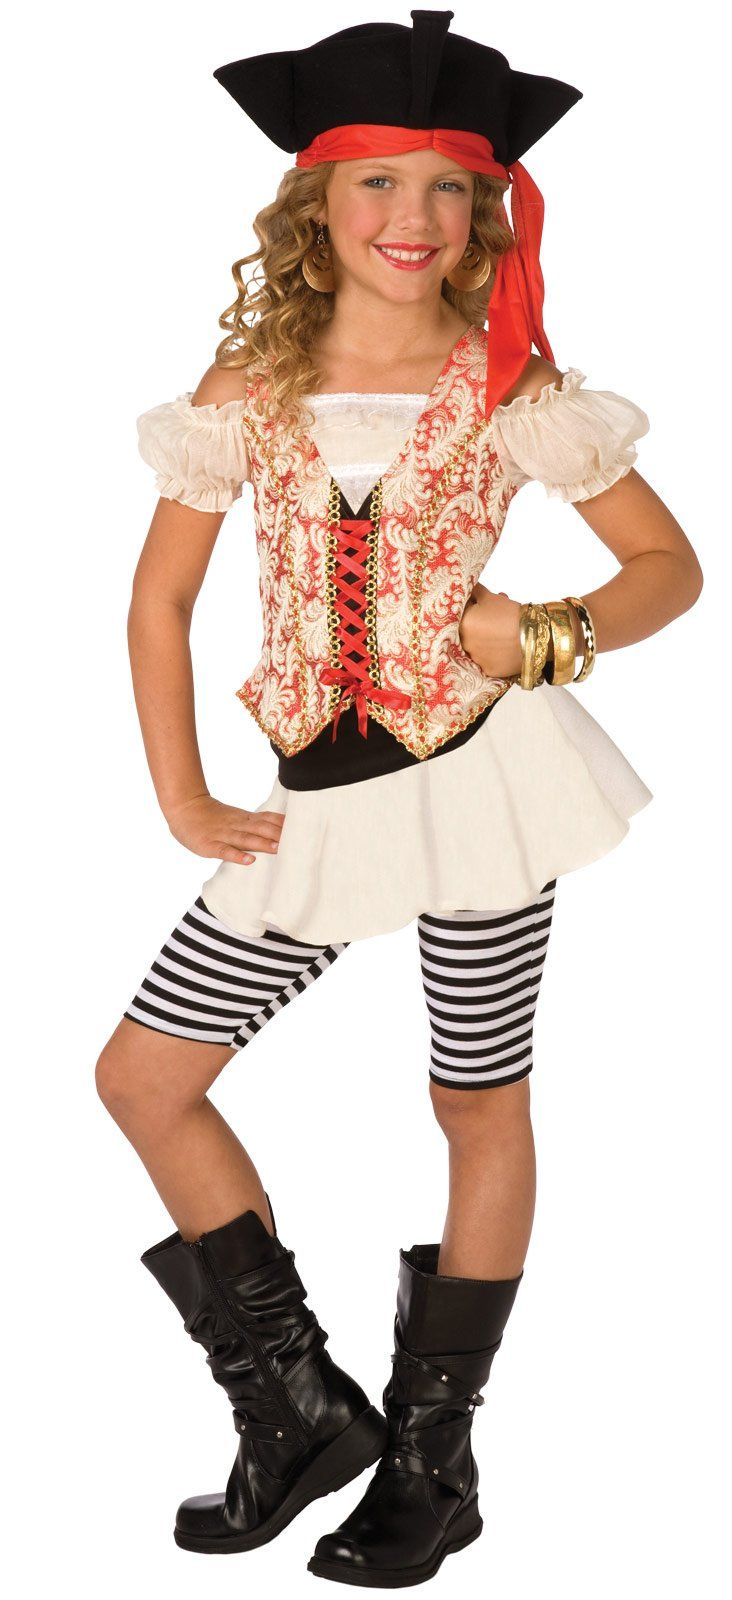 Swashbuckler Child Costume | Children costumes, Costumes and ...